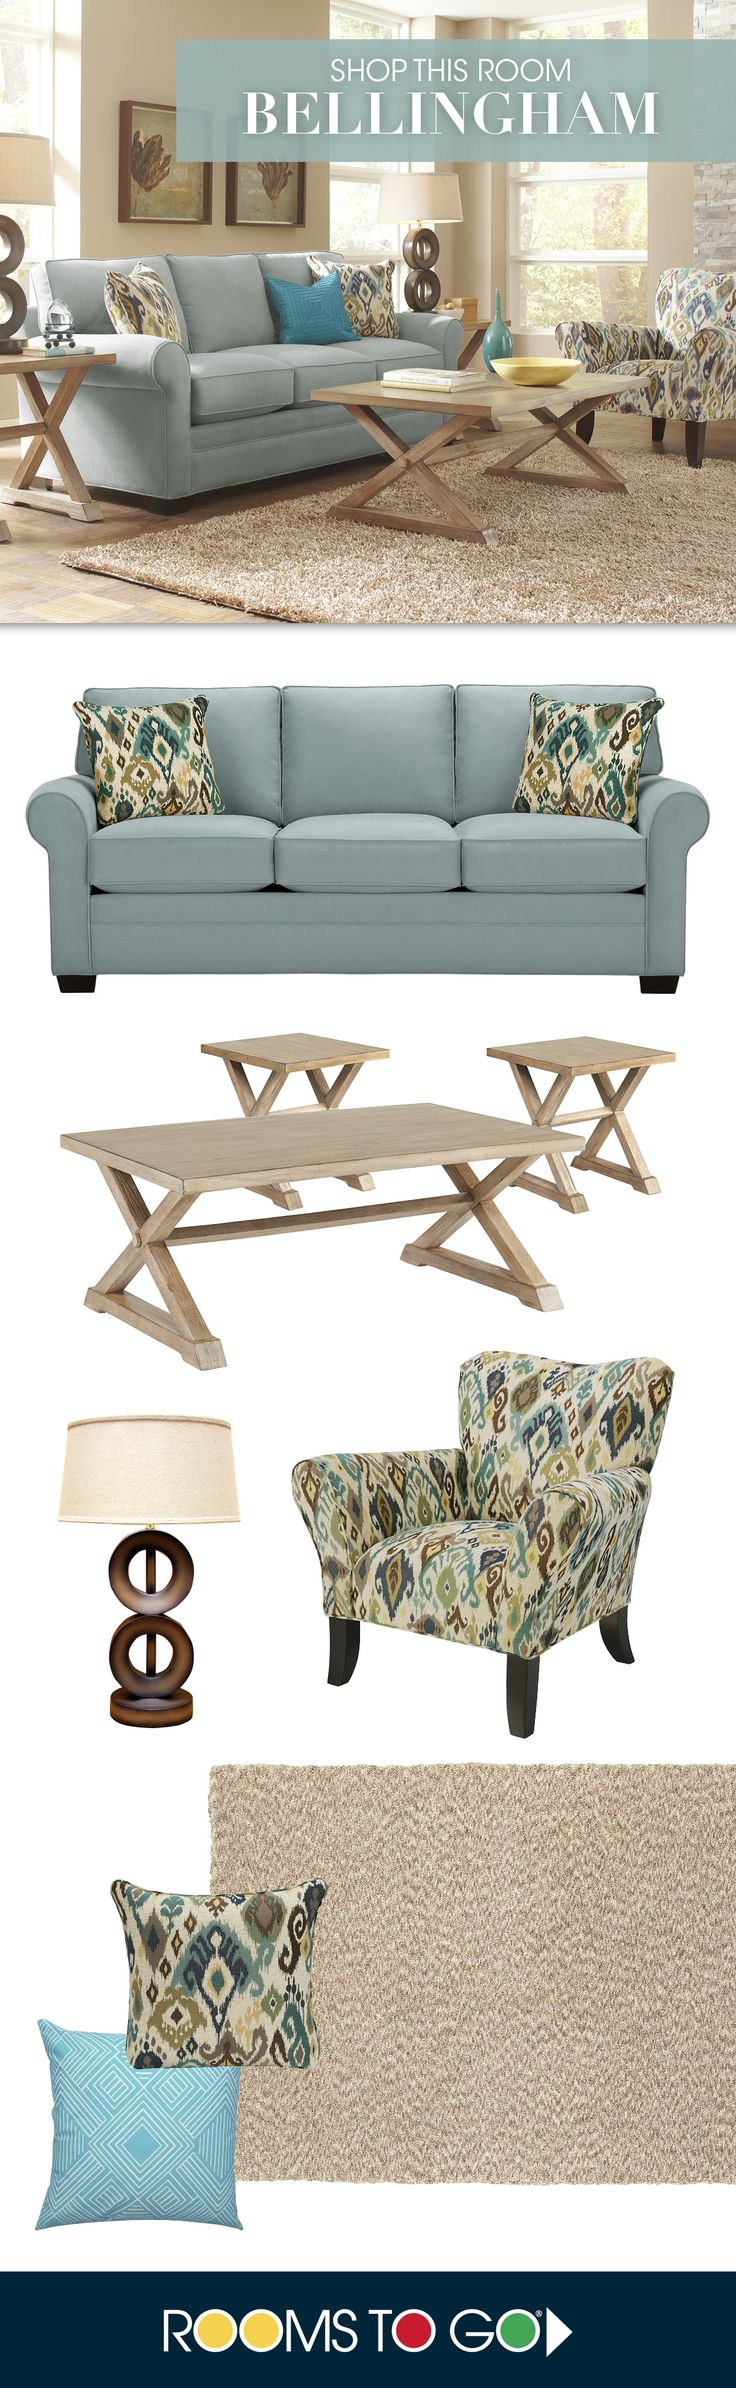 188 best lovely living spaces images on pinterest for Accents salon bellingham